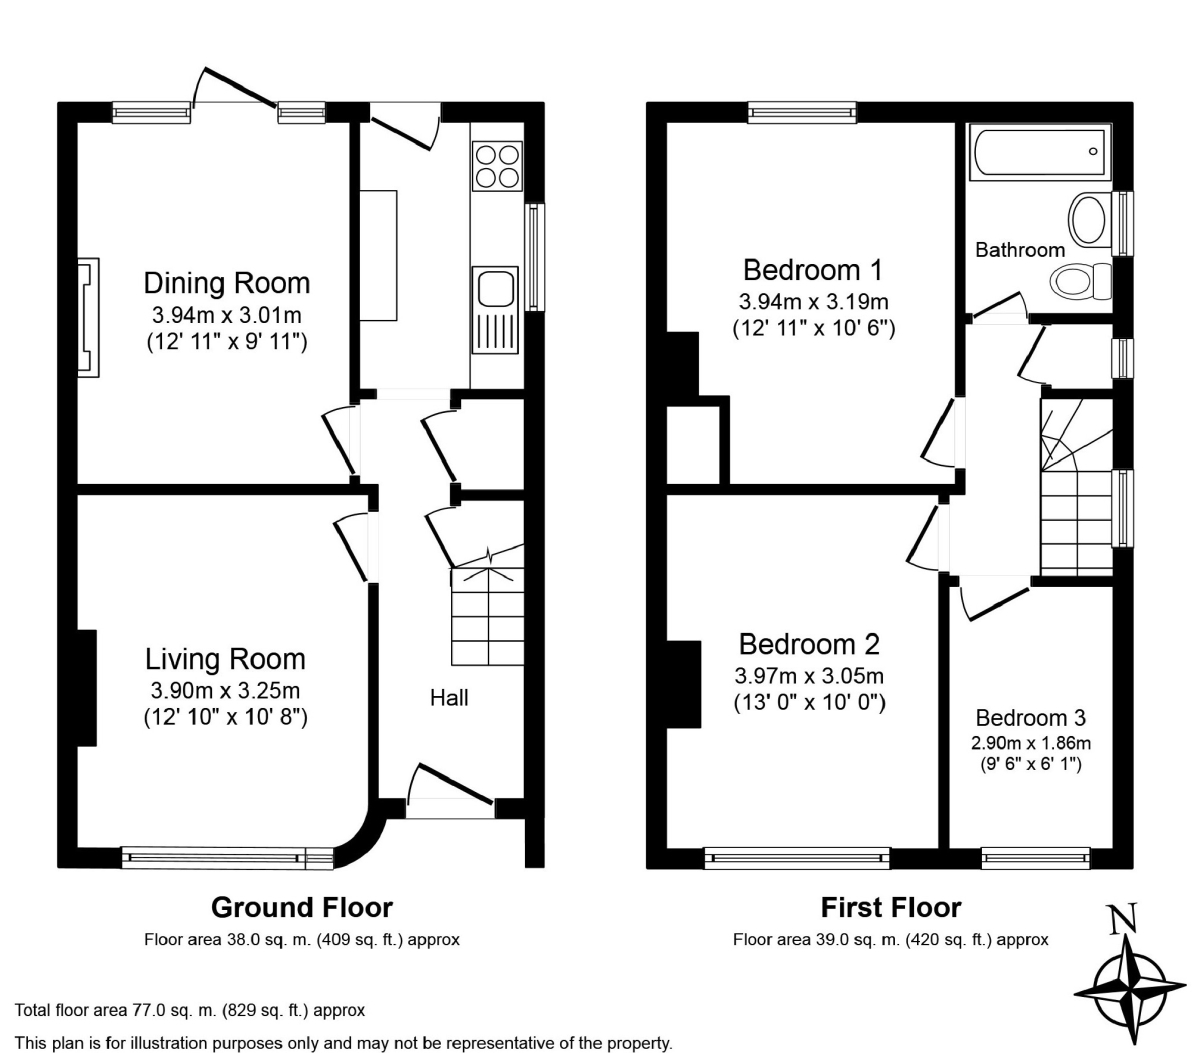 3 Bedroom House Floor Plan With Dimensions Home Plan